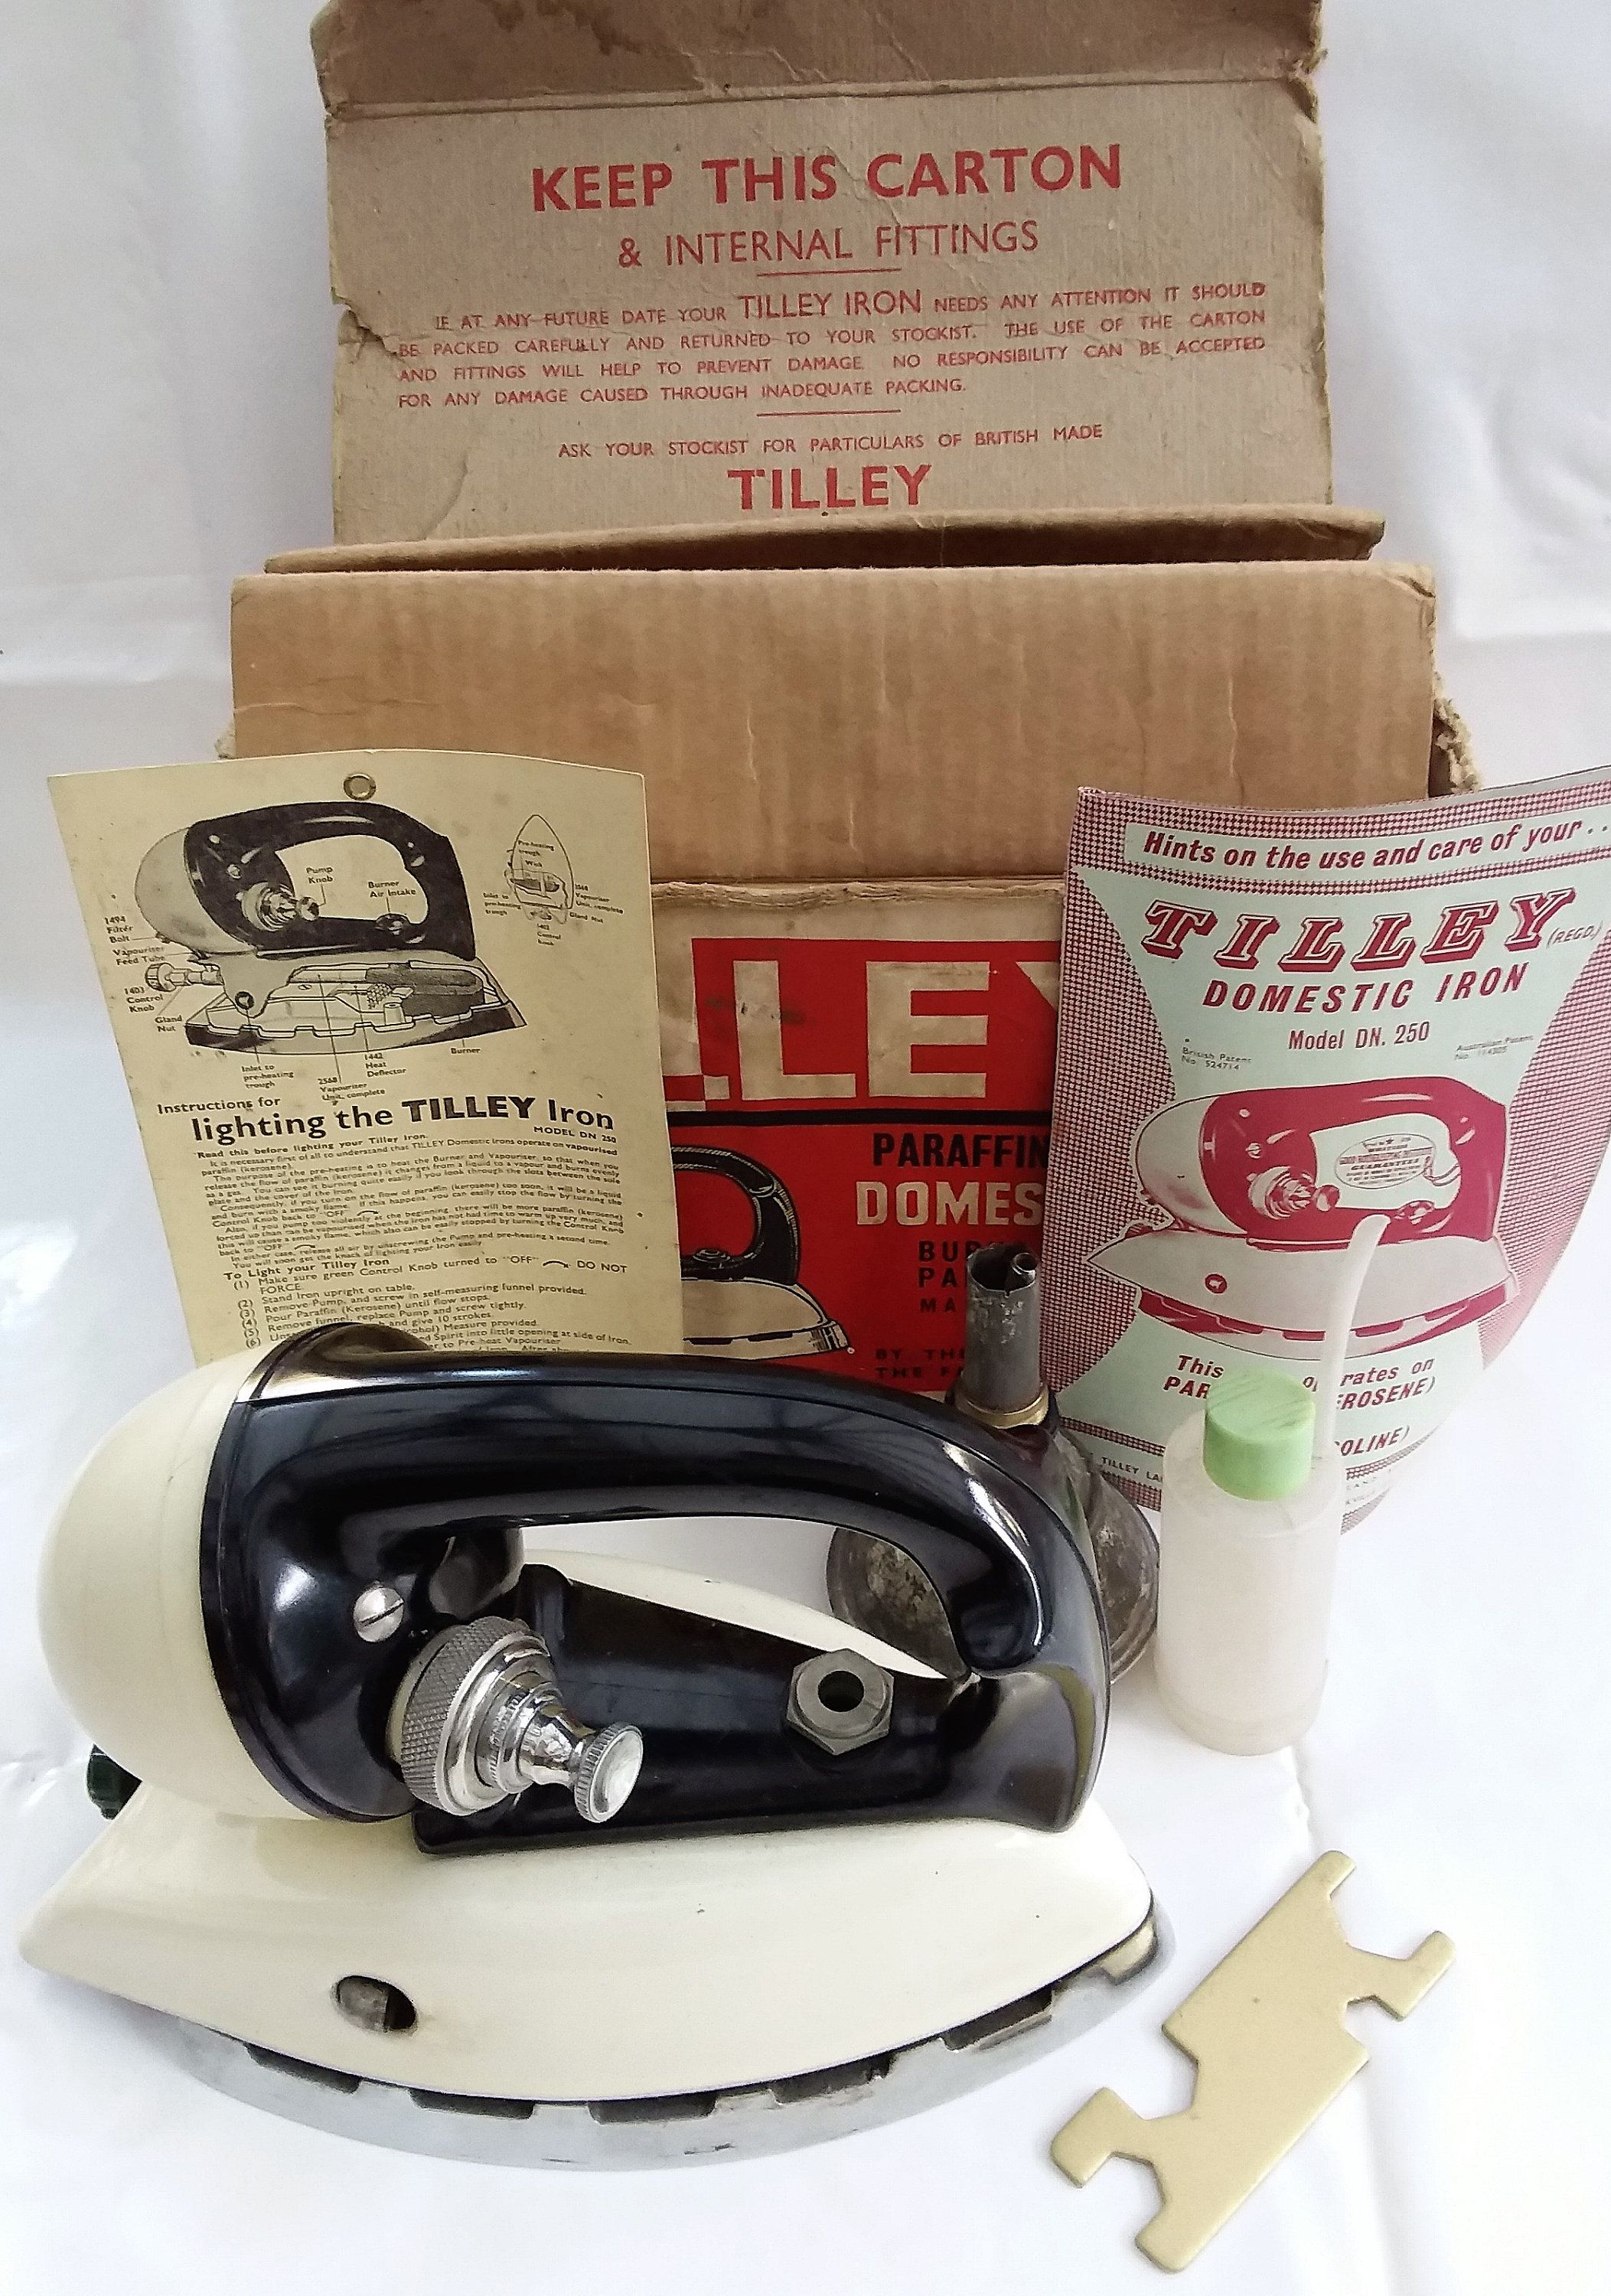 Tilley Paraffin Iron Rare Vintage Iron In Original Box With Instructions And Accessories Unused Kerosene Iron Vintage Iron Iron Vintage Appliances